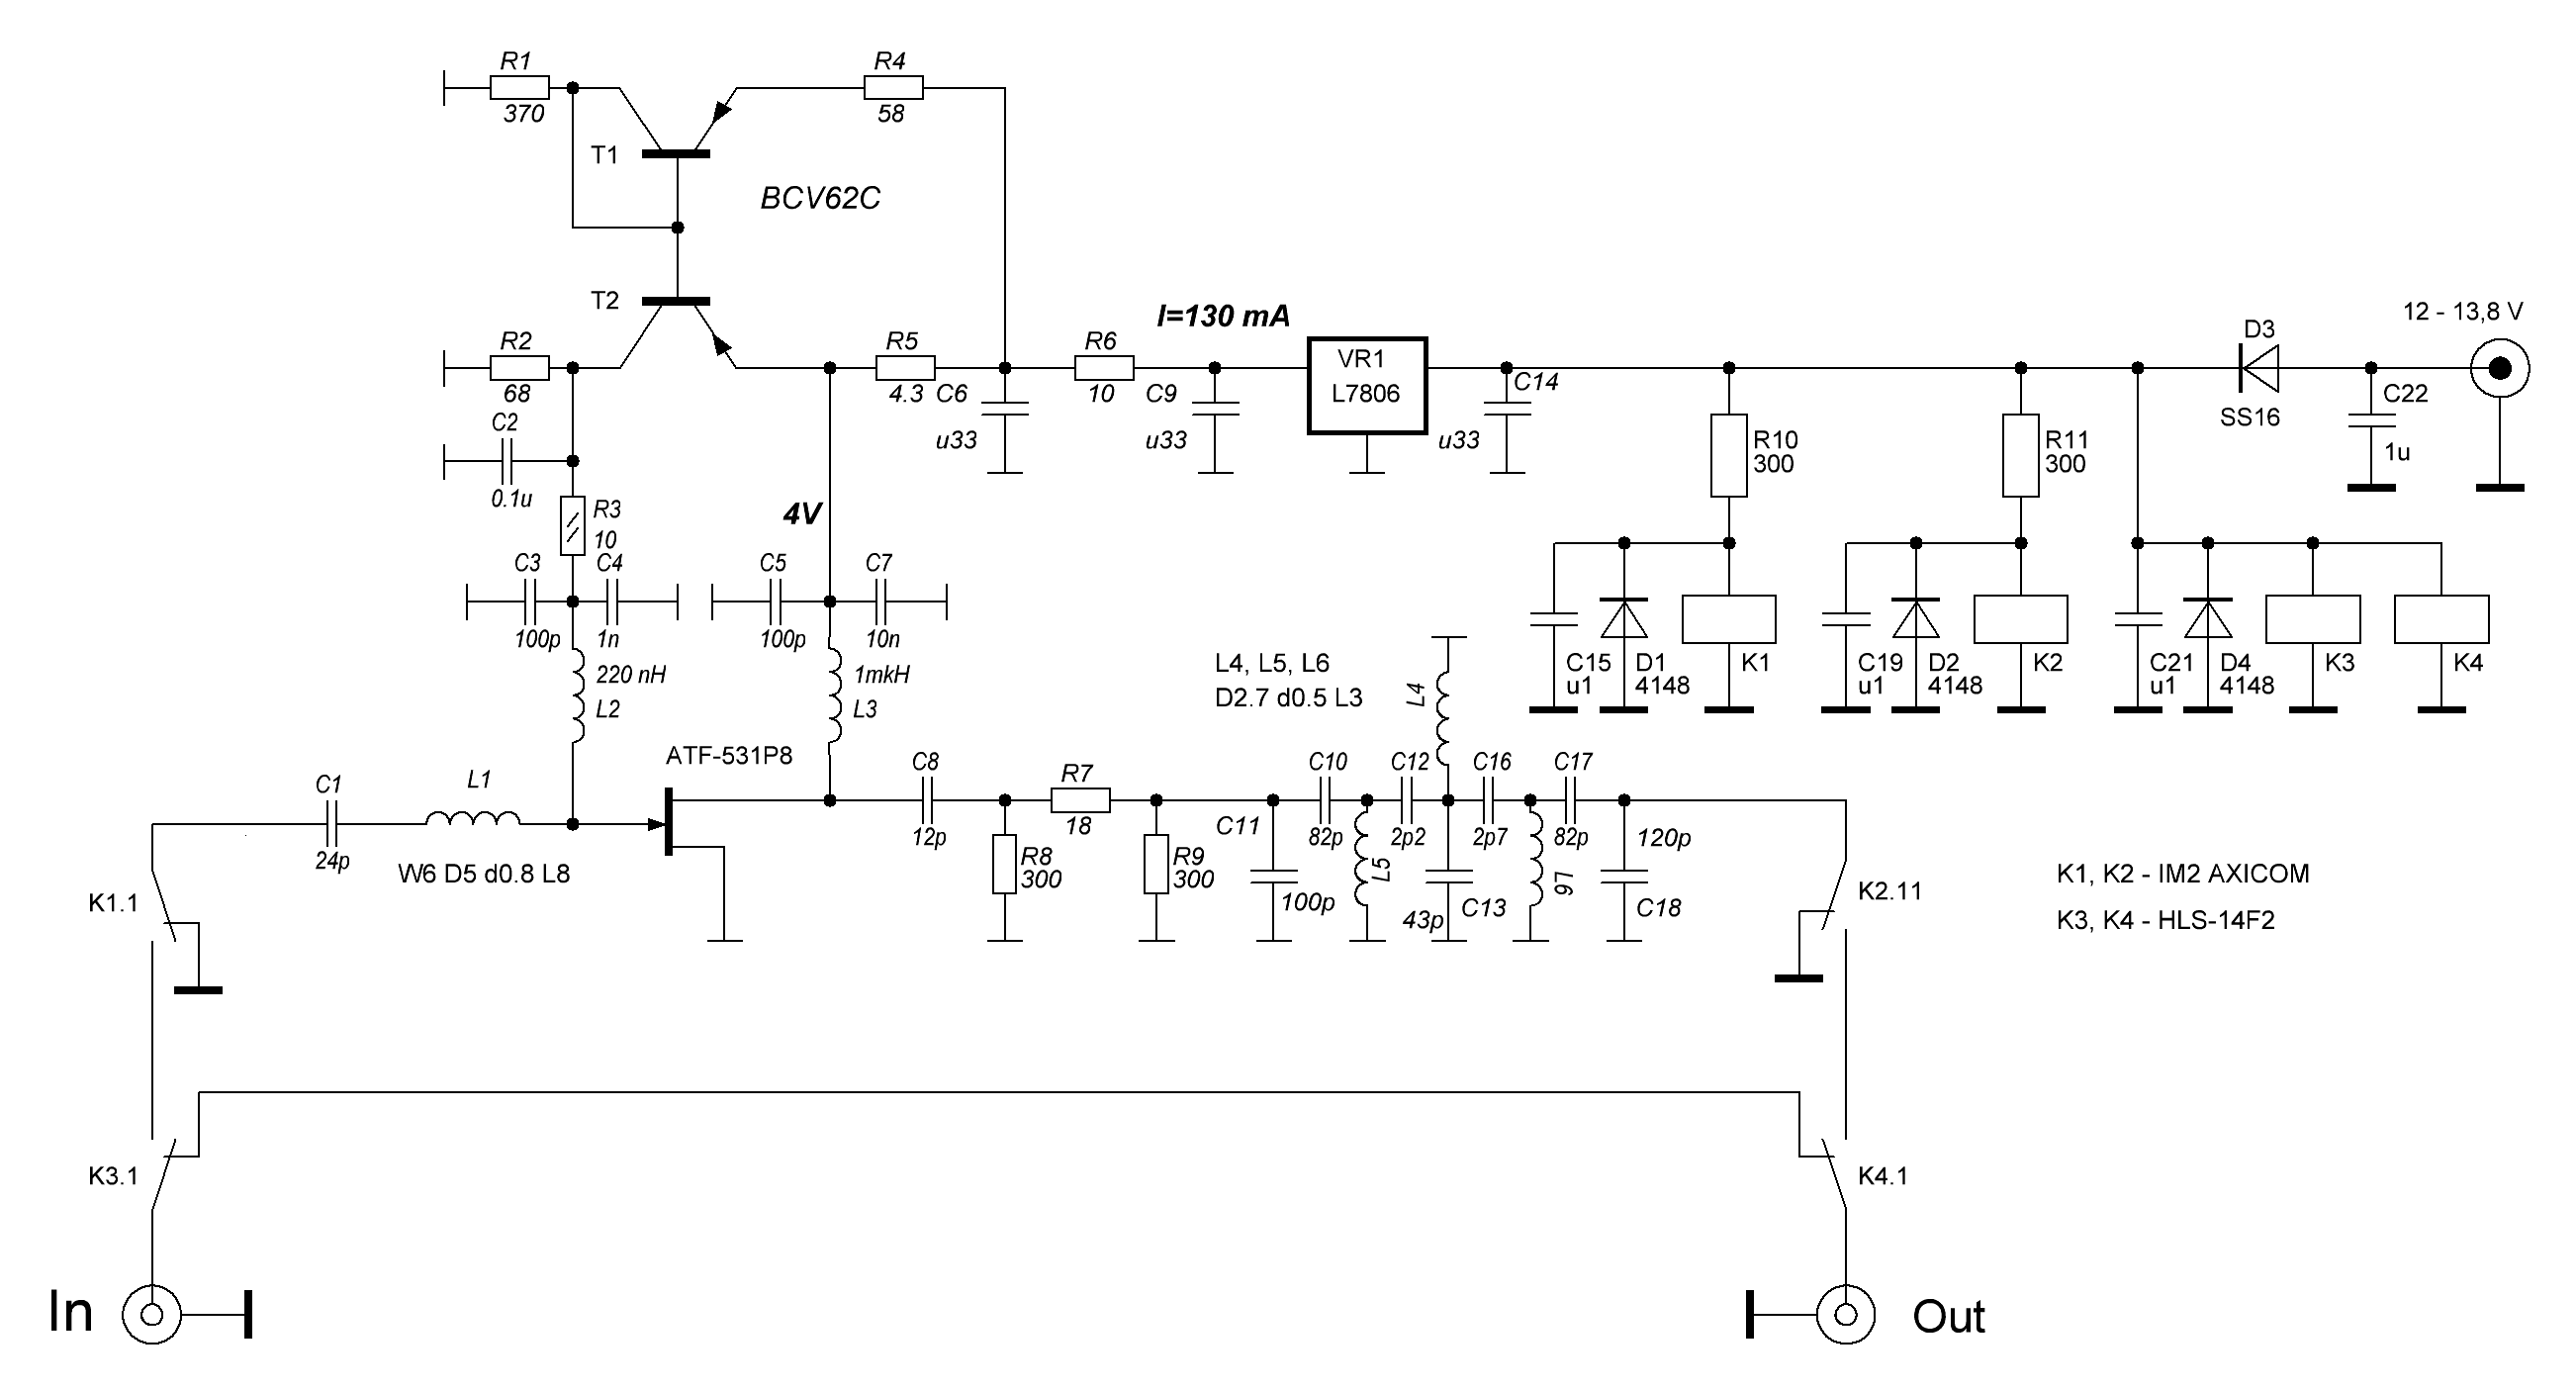 Simple 2m 6m Transverter Circuit Diagram Tradeoficcom Wiring Converter Qro Lnas With Built In Bypass Relays For 4m 1 25m And 70cm